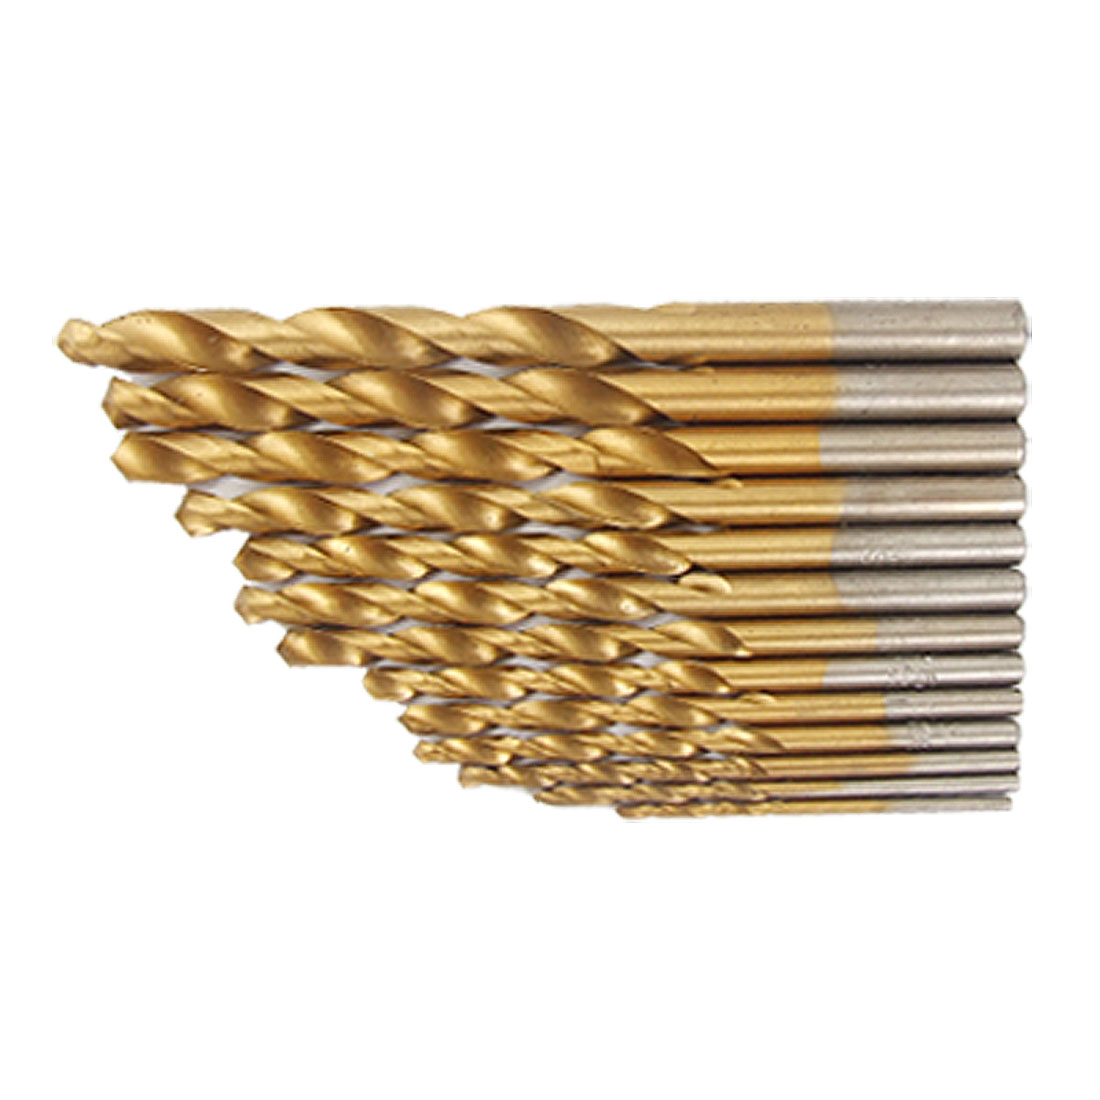 13 Pcs Bronze Tone Straight Shank HSS Twist Drill Bit